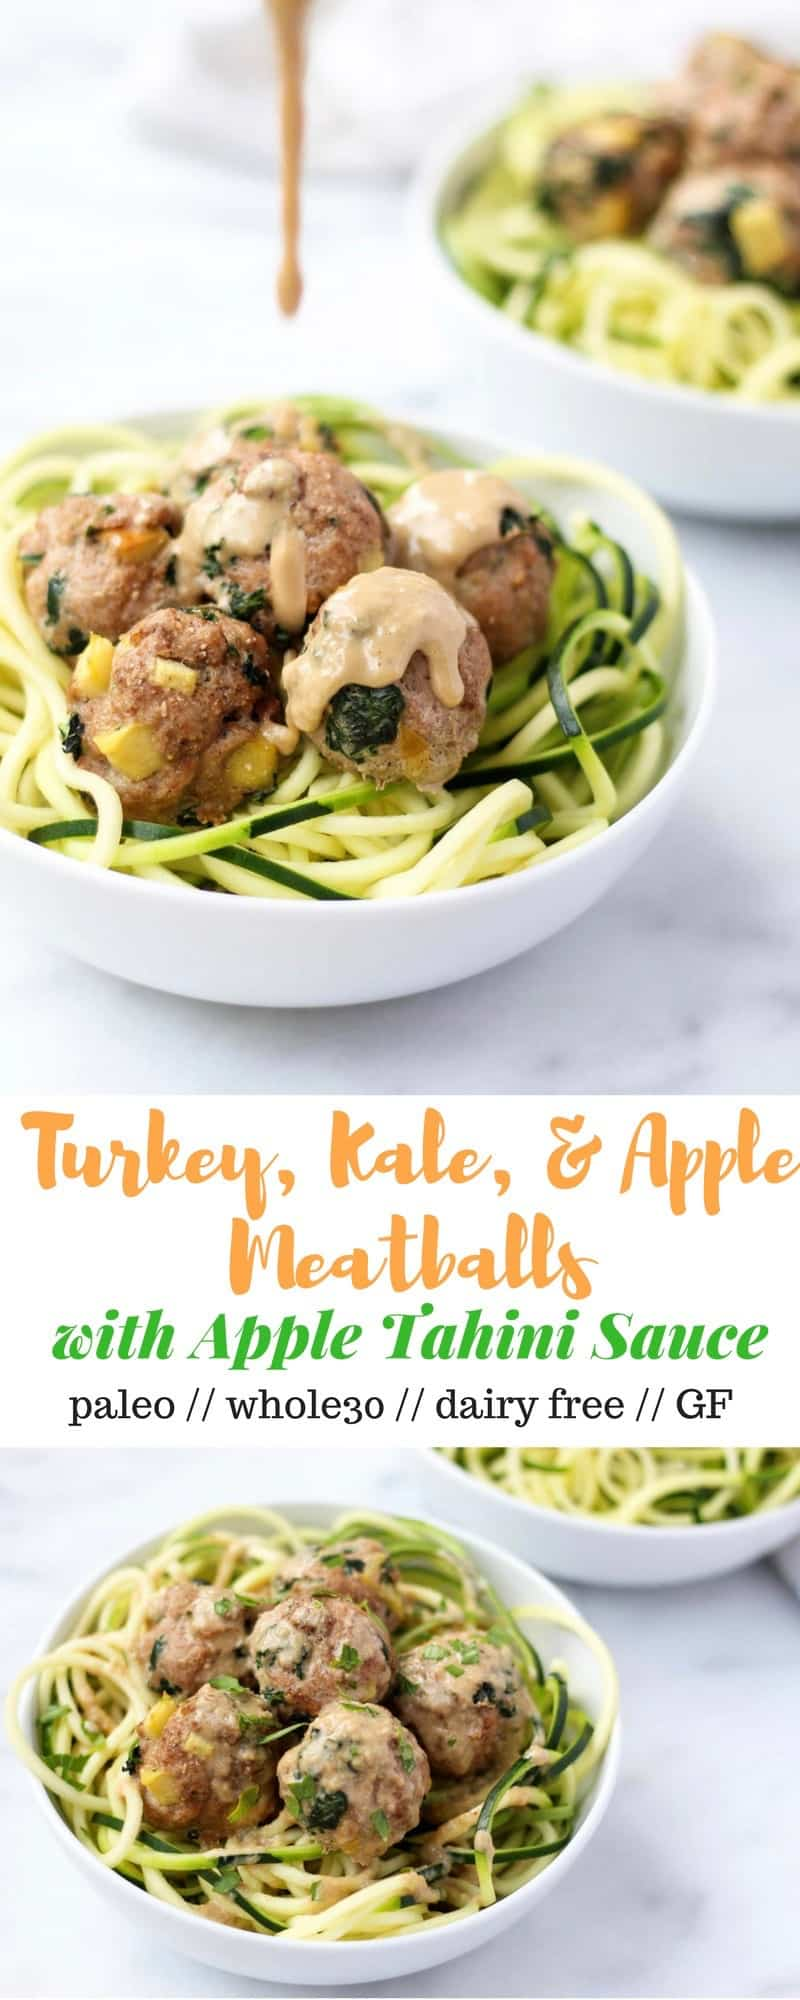 Protein, veggies, and fruit packed, these Turkey, Kale, & Apple Meatballs come together in less than 30 minutes and are paleo, gluten free, and Whole30 compliant! - Eat the Gains